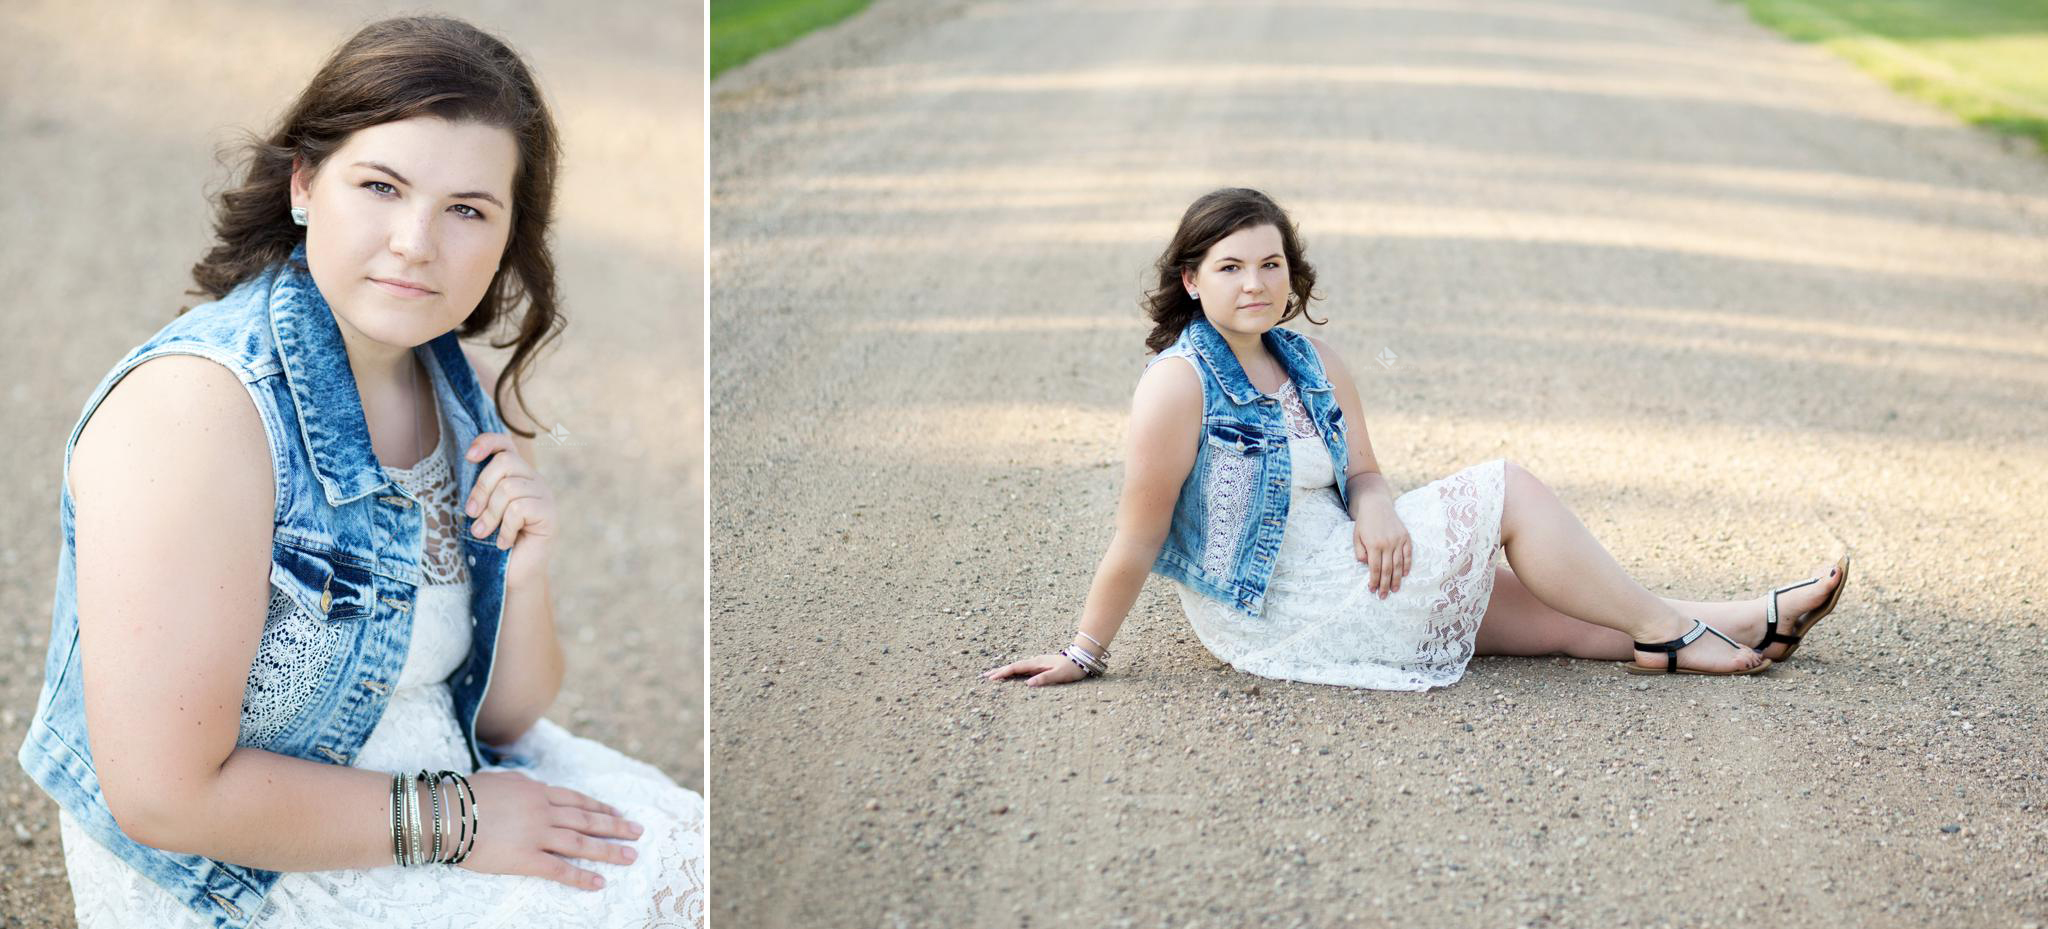 a brunette senior girl in a white dress and denim vest on a gravel road in the country